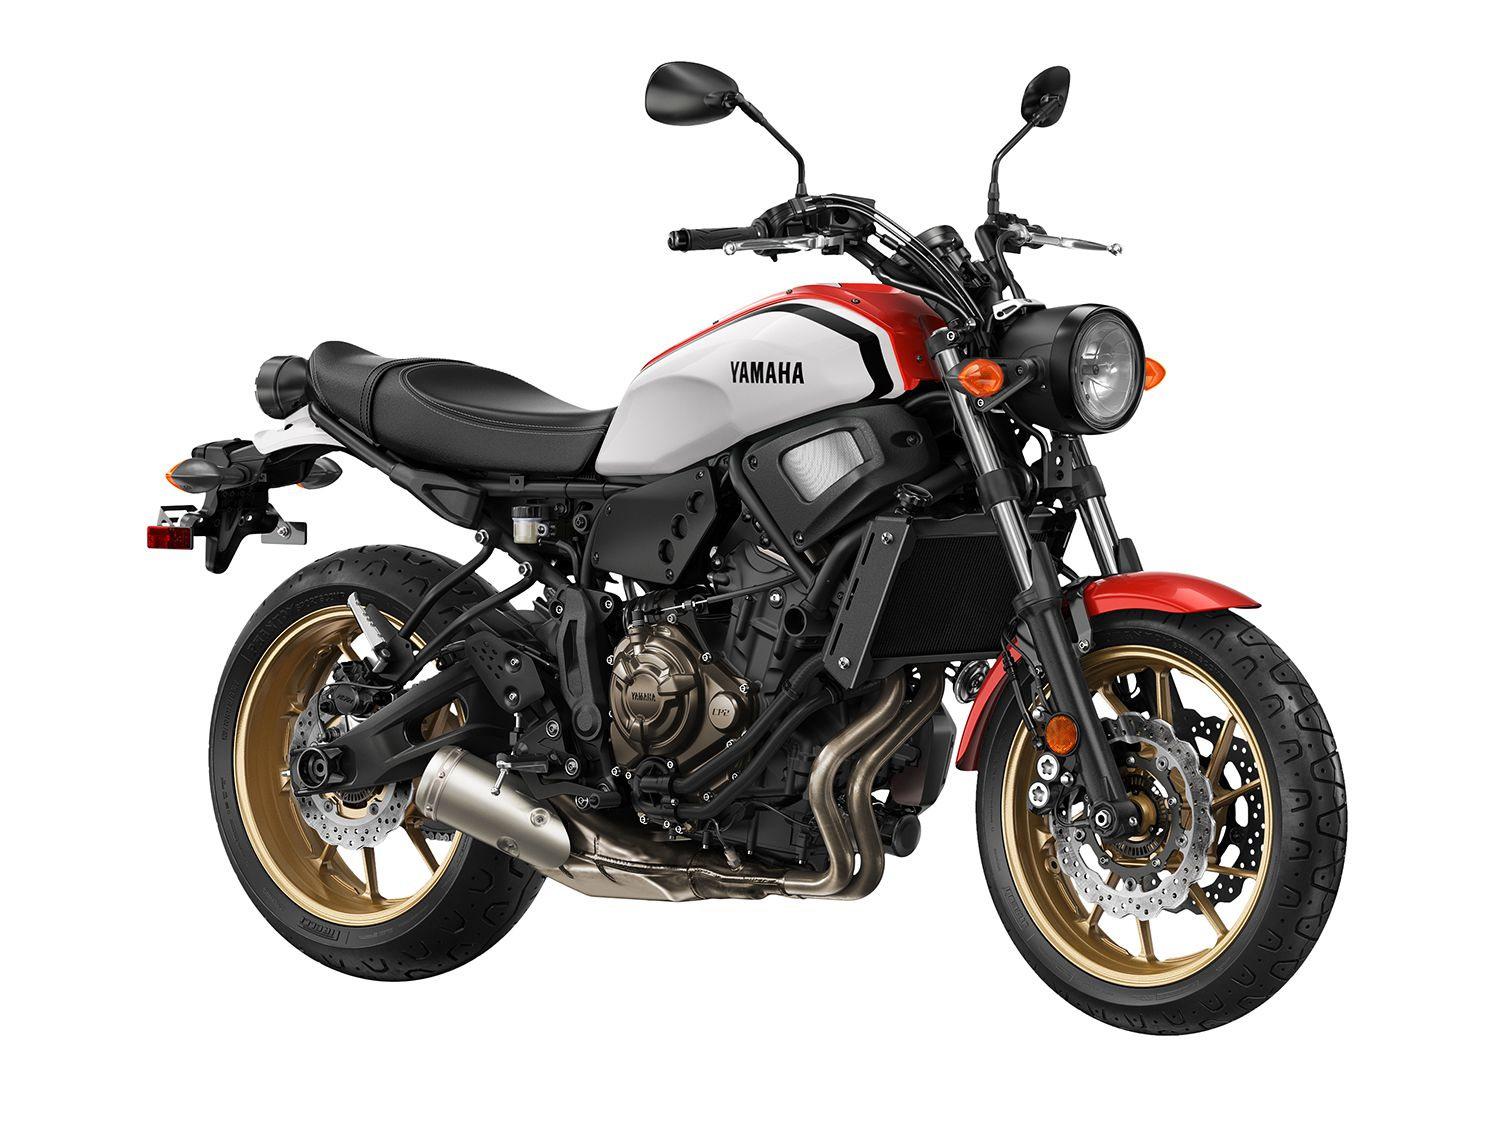 <h2>2020 Yamaha XSR700</h2> </br> The 2020 Yamaha XSR700 (shown) pulls many of its influences from the classic XS vintage motorcycles with exposed aluminum details, classically shaped tank, stepped seat, and classically styled headlight and taillight. The XSR900 will also come in the same color scheme.